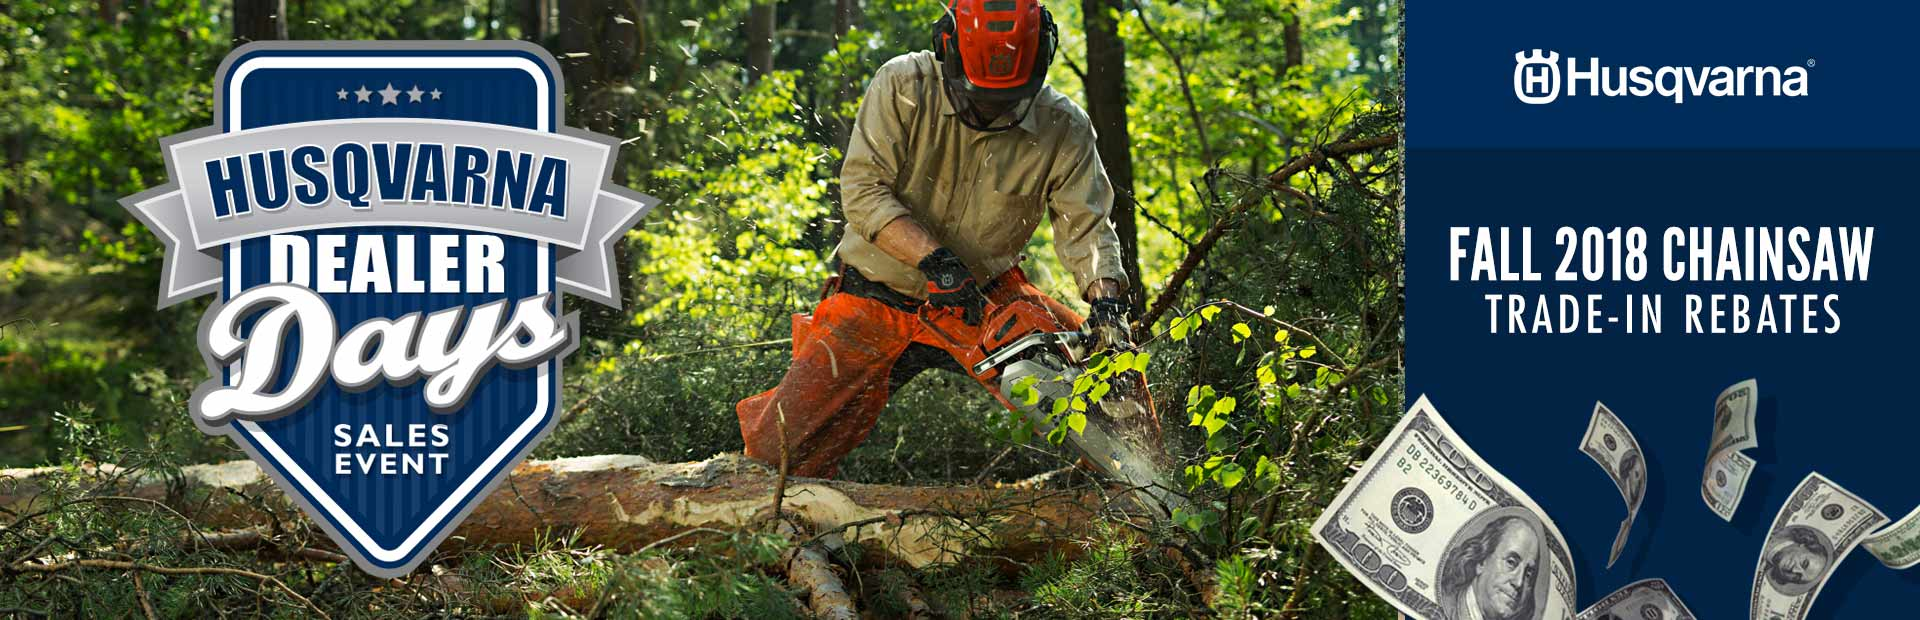 Husqvarna: Fall 2018 Chainsaw Trade-In Rebates